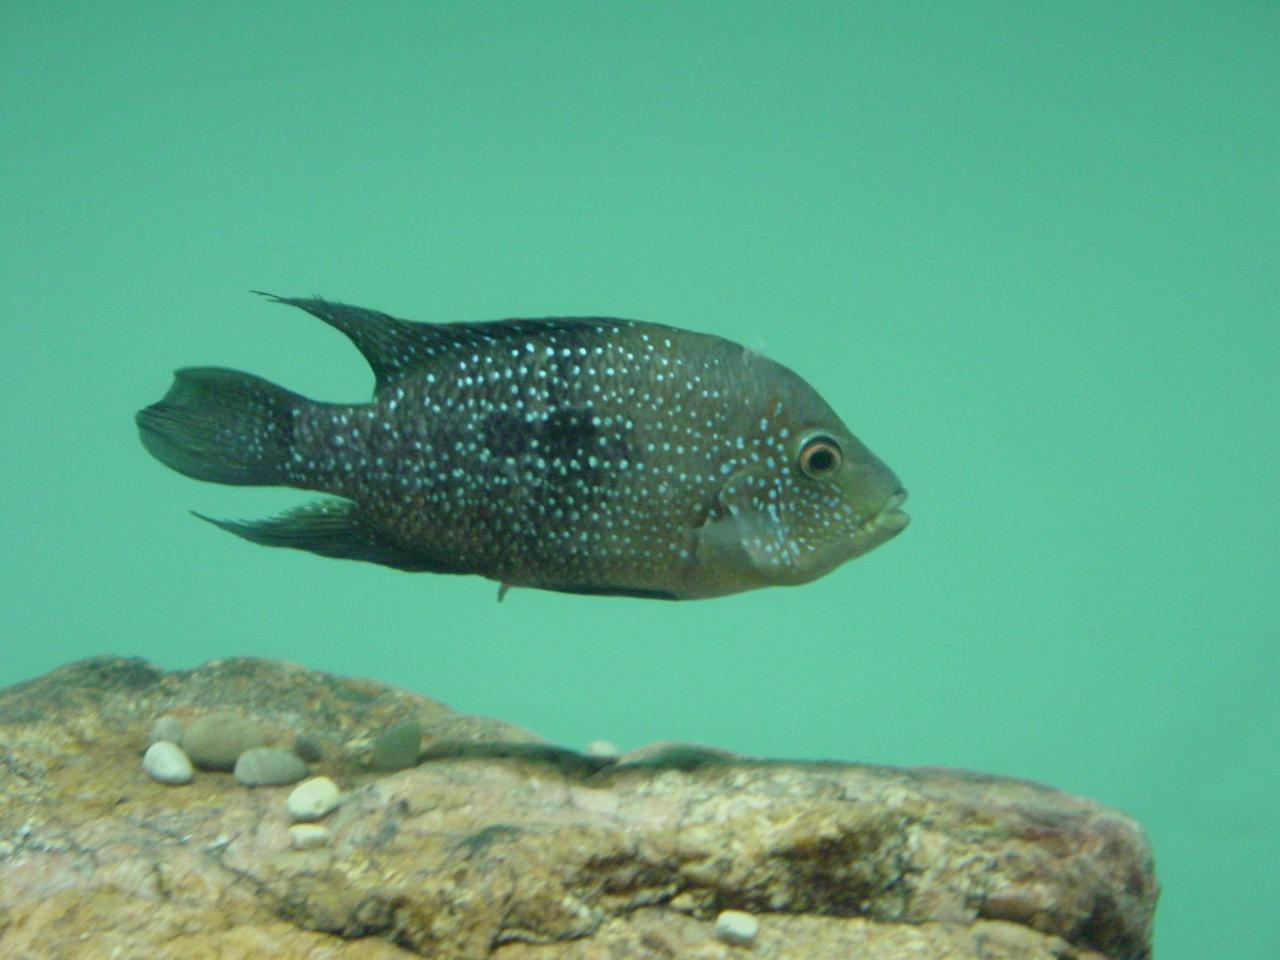 The cichlid goes by the scientific name of Herichthys minckleyi